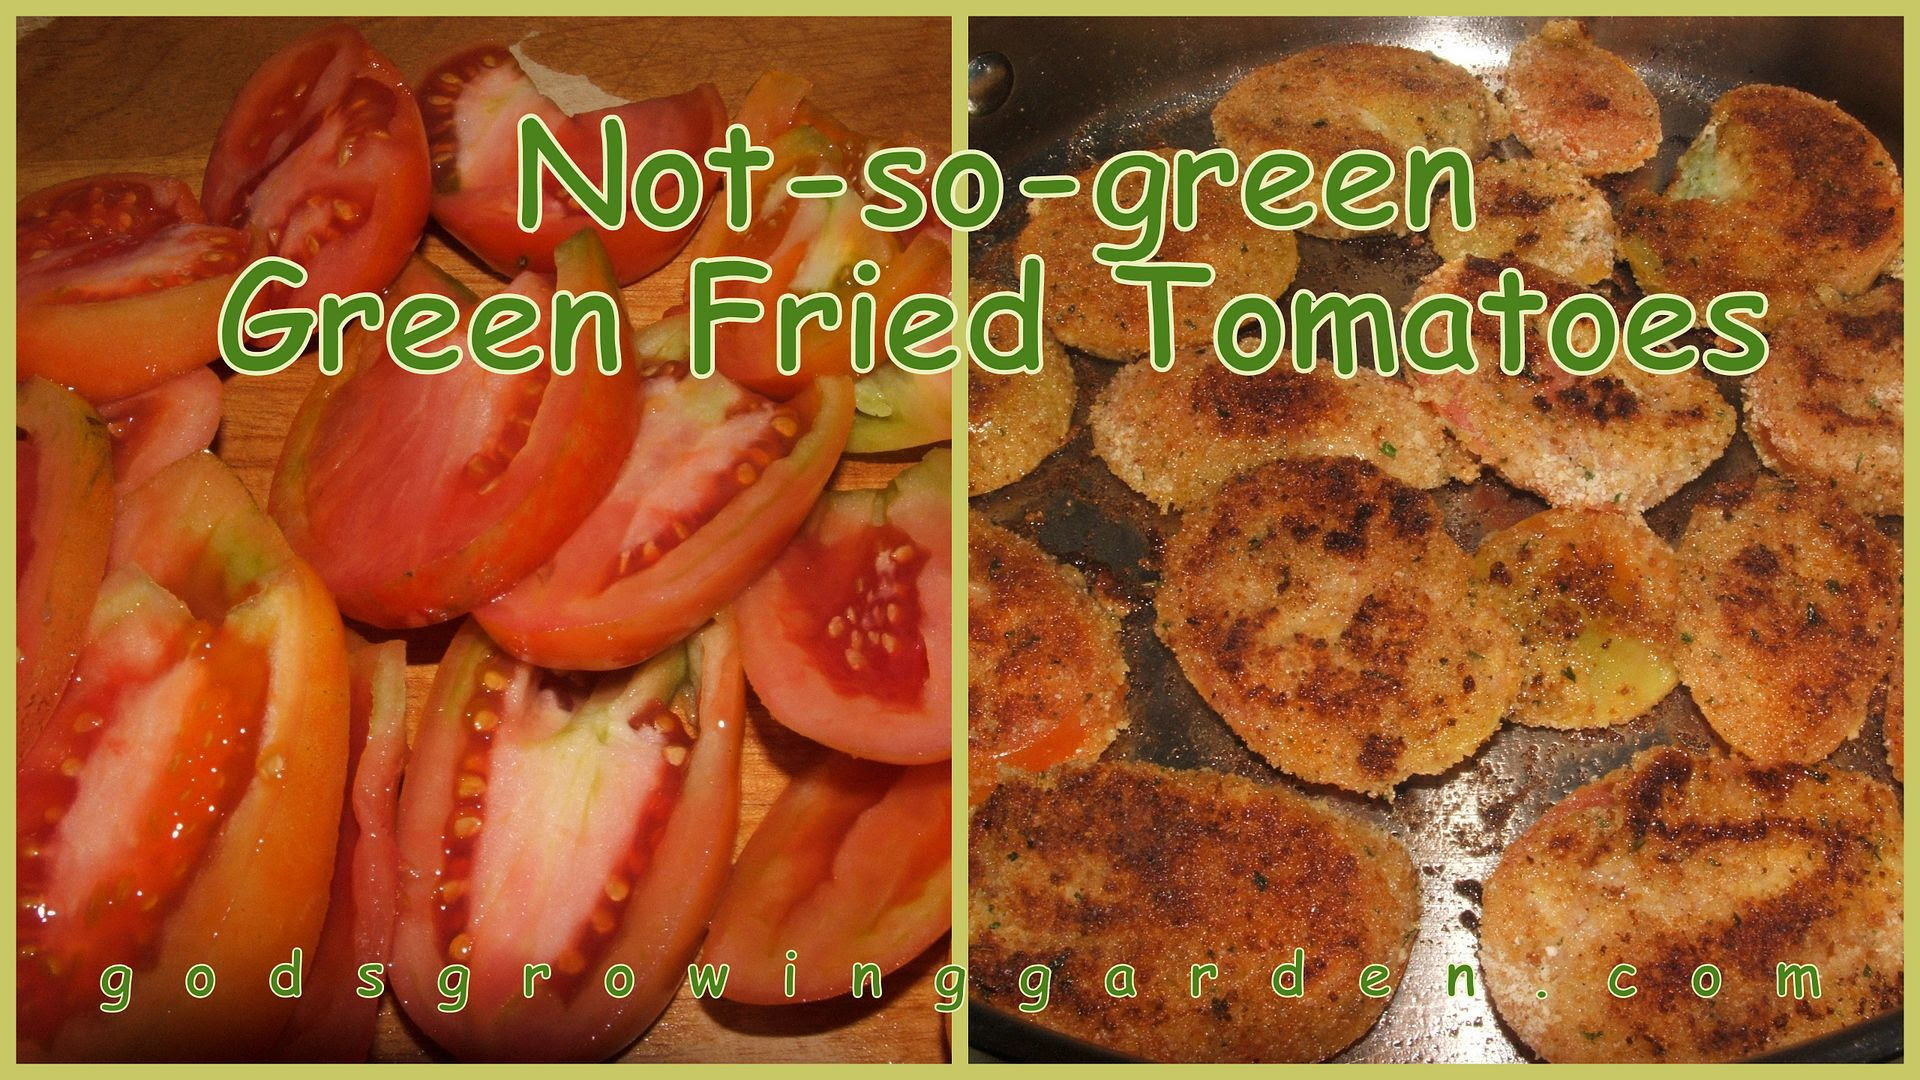 Green Fried Tomatoes by Angie Ouellette-Tower for godsgrowinggarden.com photo 2014-09-22_zps6c5dc04b.jpg